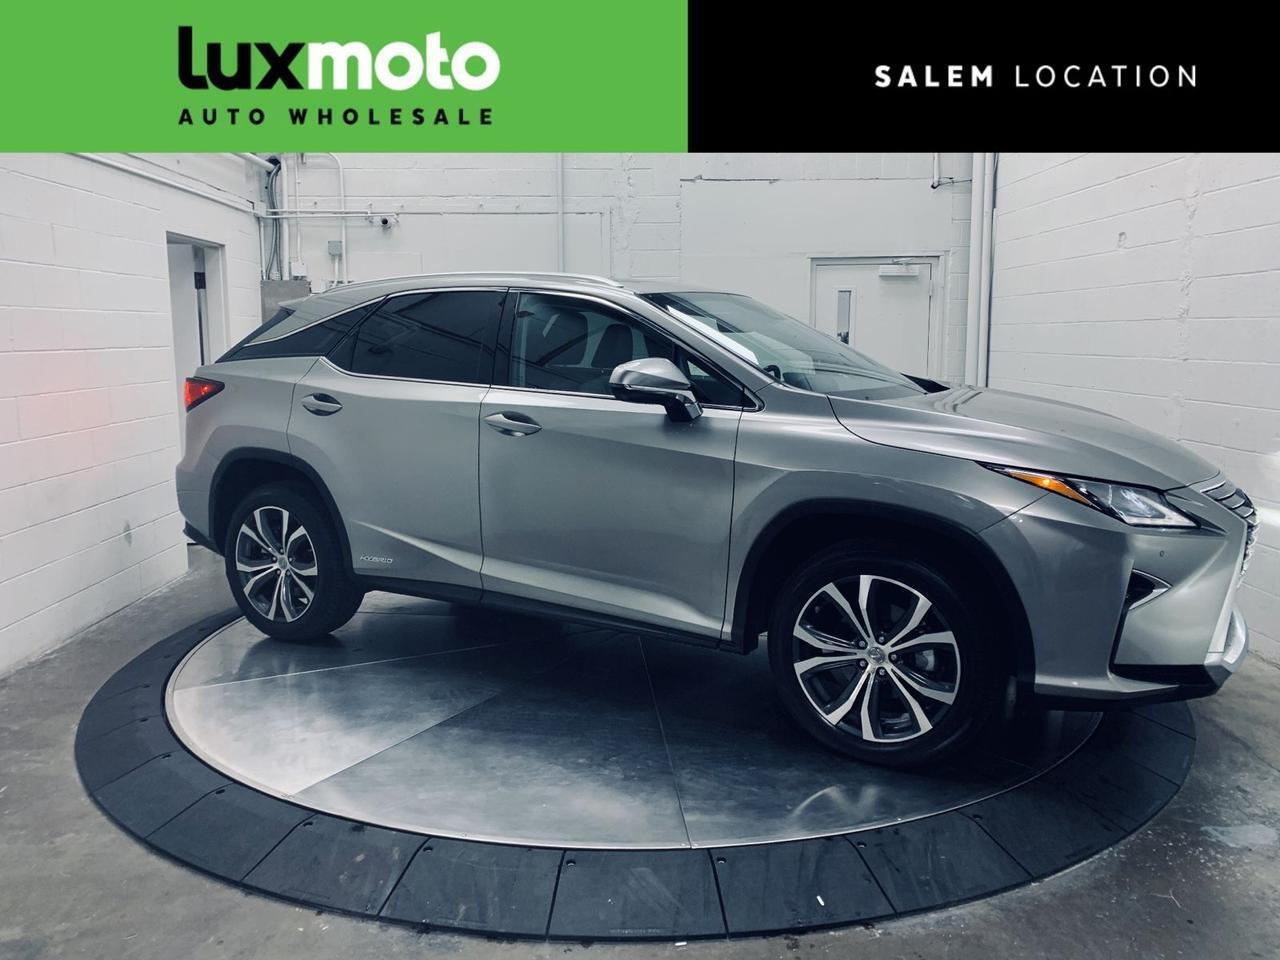 2017 Lexus RX 450h Cold Weather Package Towing Prep Package Portland OR